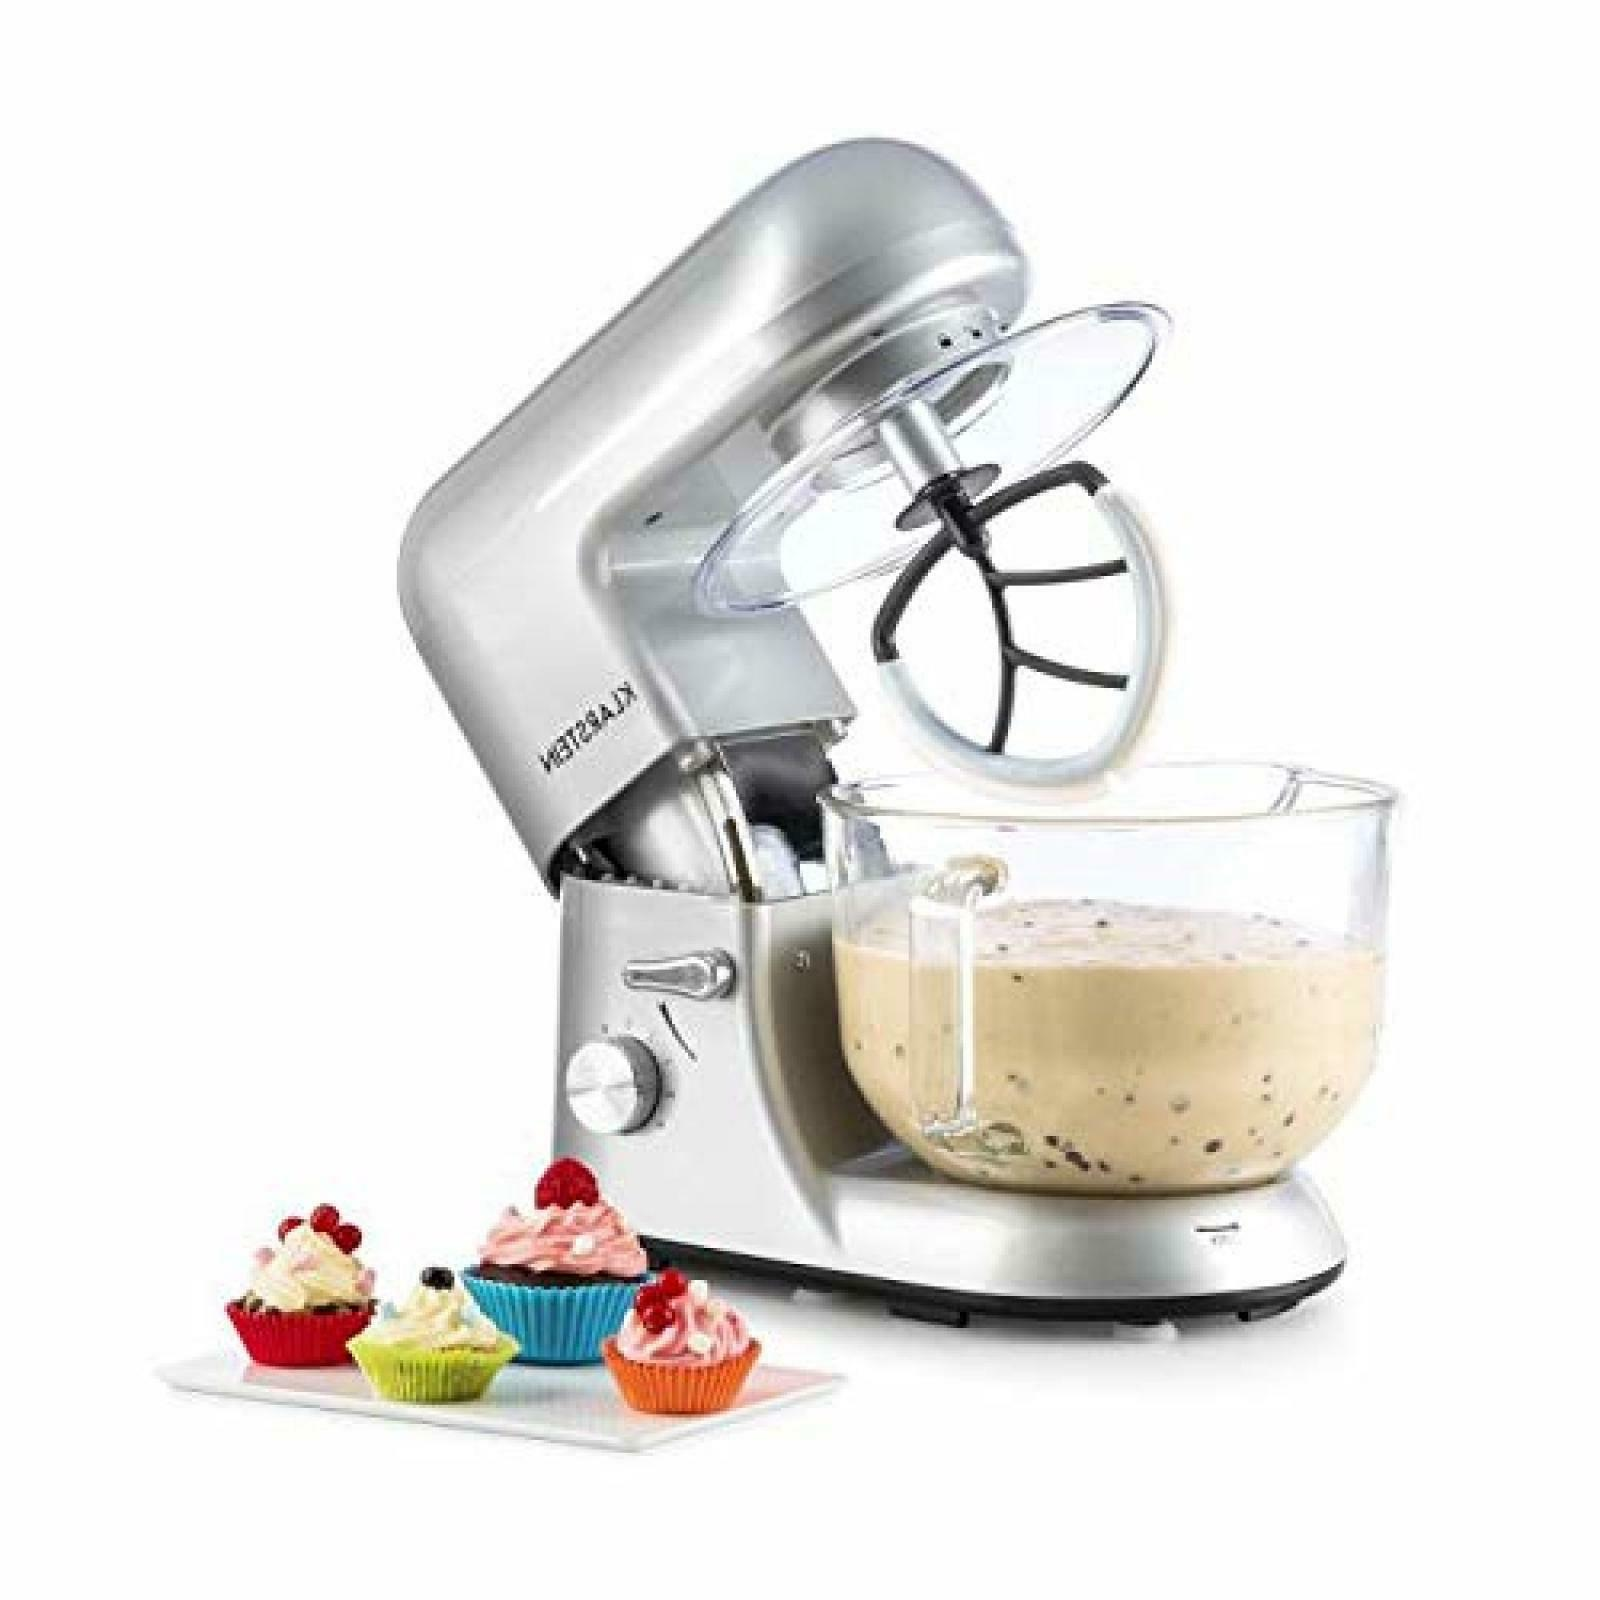 ELECTRIC STAND MIXER 5.5 Qt 650 W 6 Speed Silver Tilt Head C